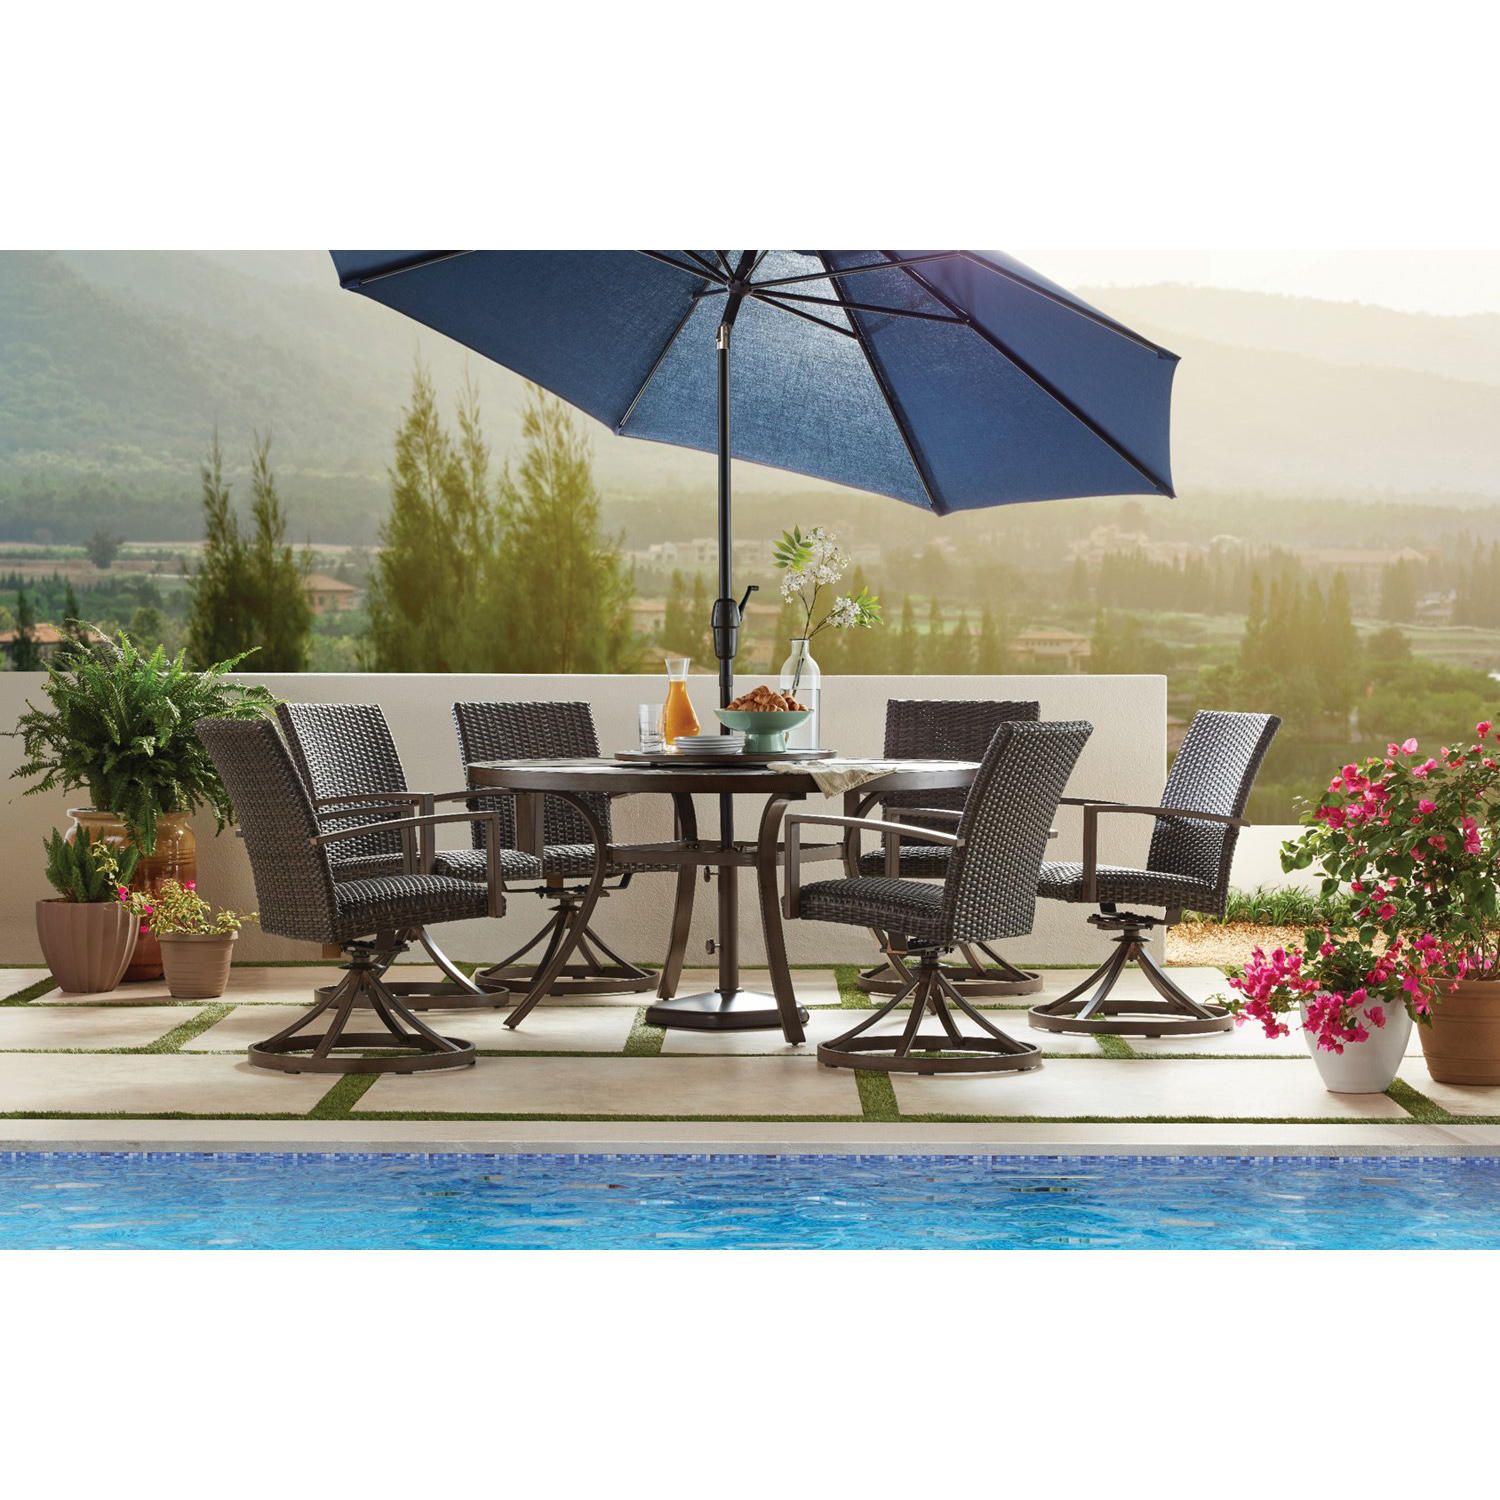 Member's Mark Agio Fremont 8-Piece Round Patio Dining Set